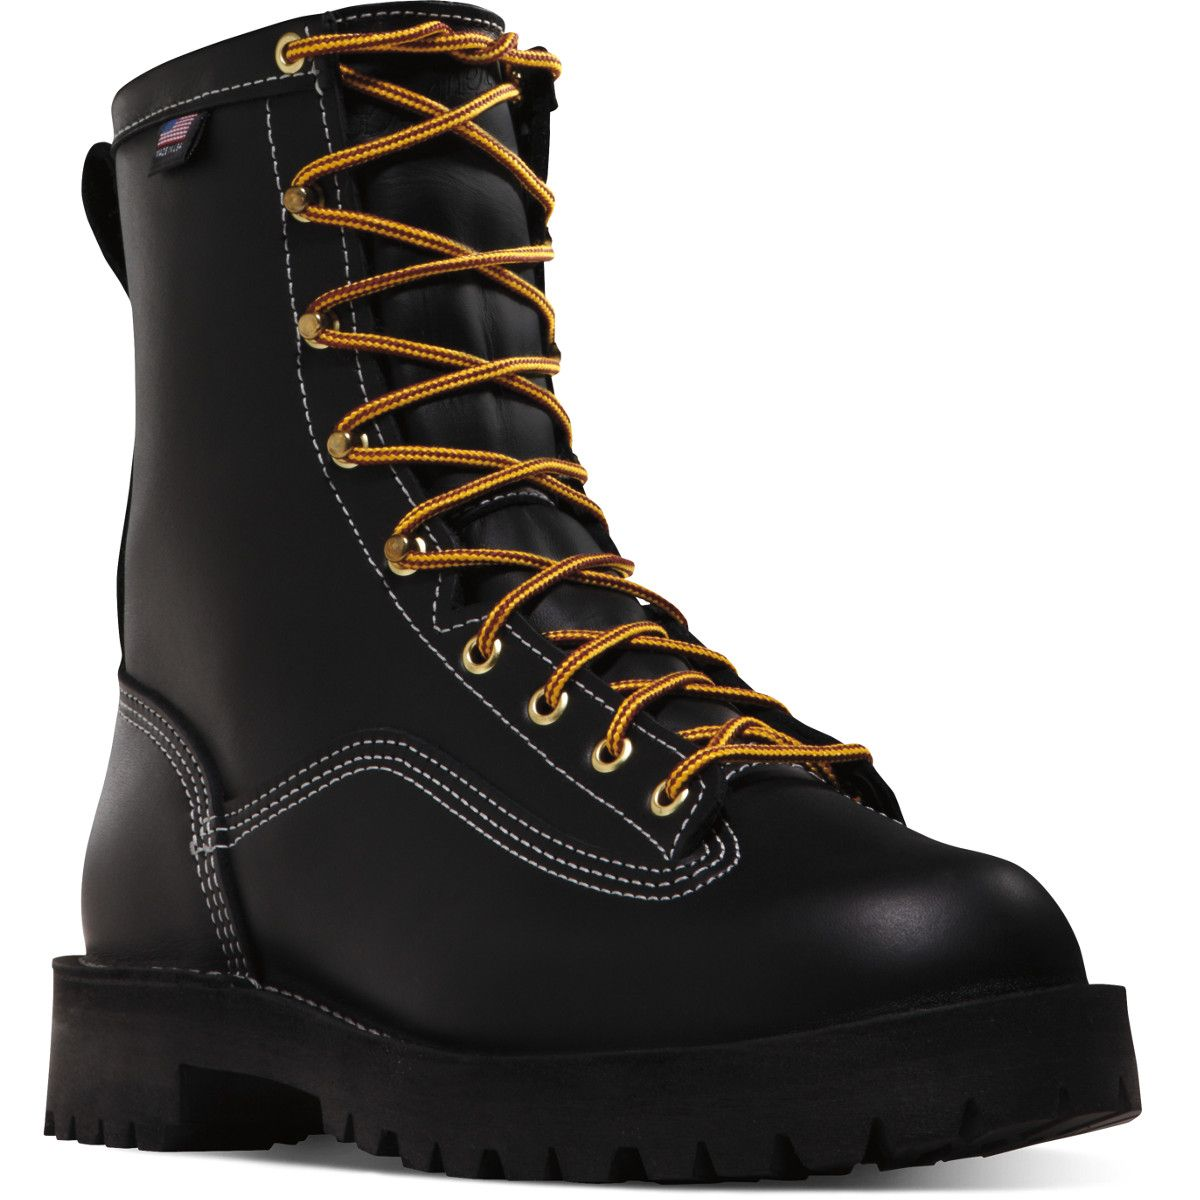 13+ Danner crafter 8 boots ideas